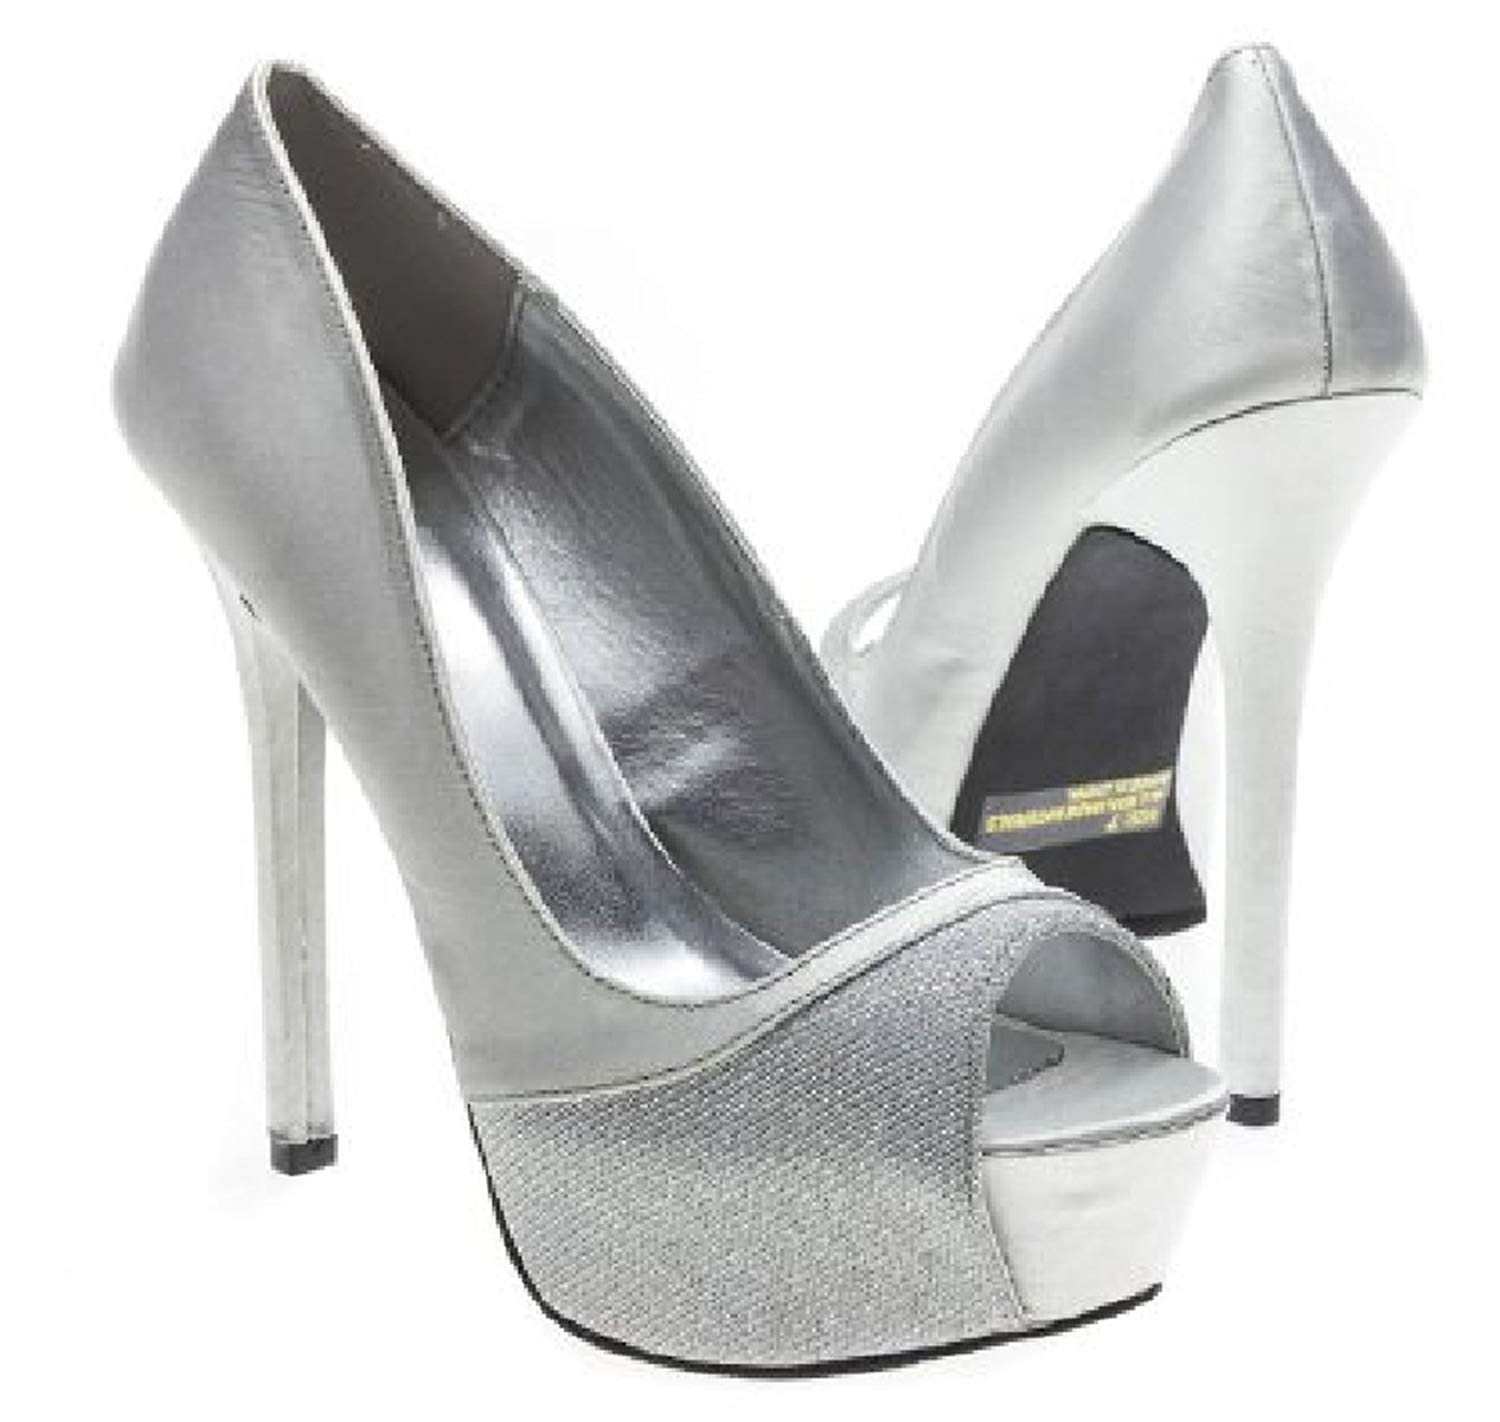 cf6f1116a3e5 ... Womens Silver Stud Stilettos High Heels Sandals Gladiator Cage Shoes  Size. 22.99. null. Get Quotations · Qupid Satin Glitter Sexy Peep Toe  Stilettos ...